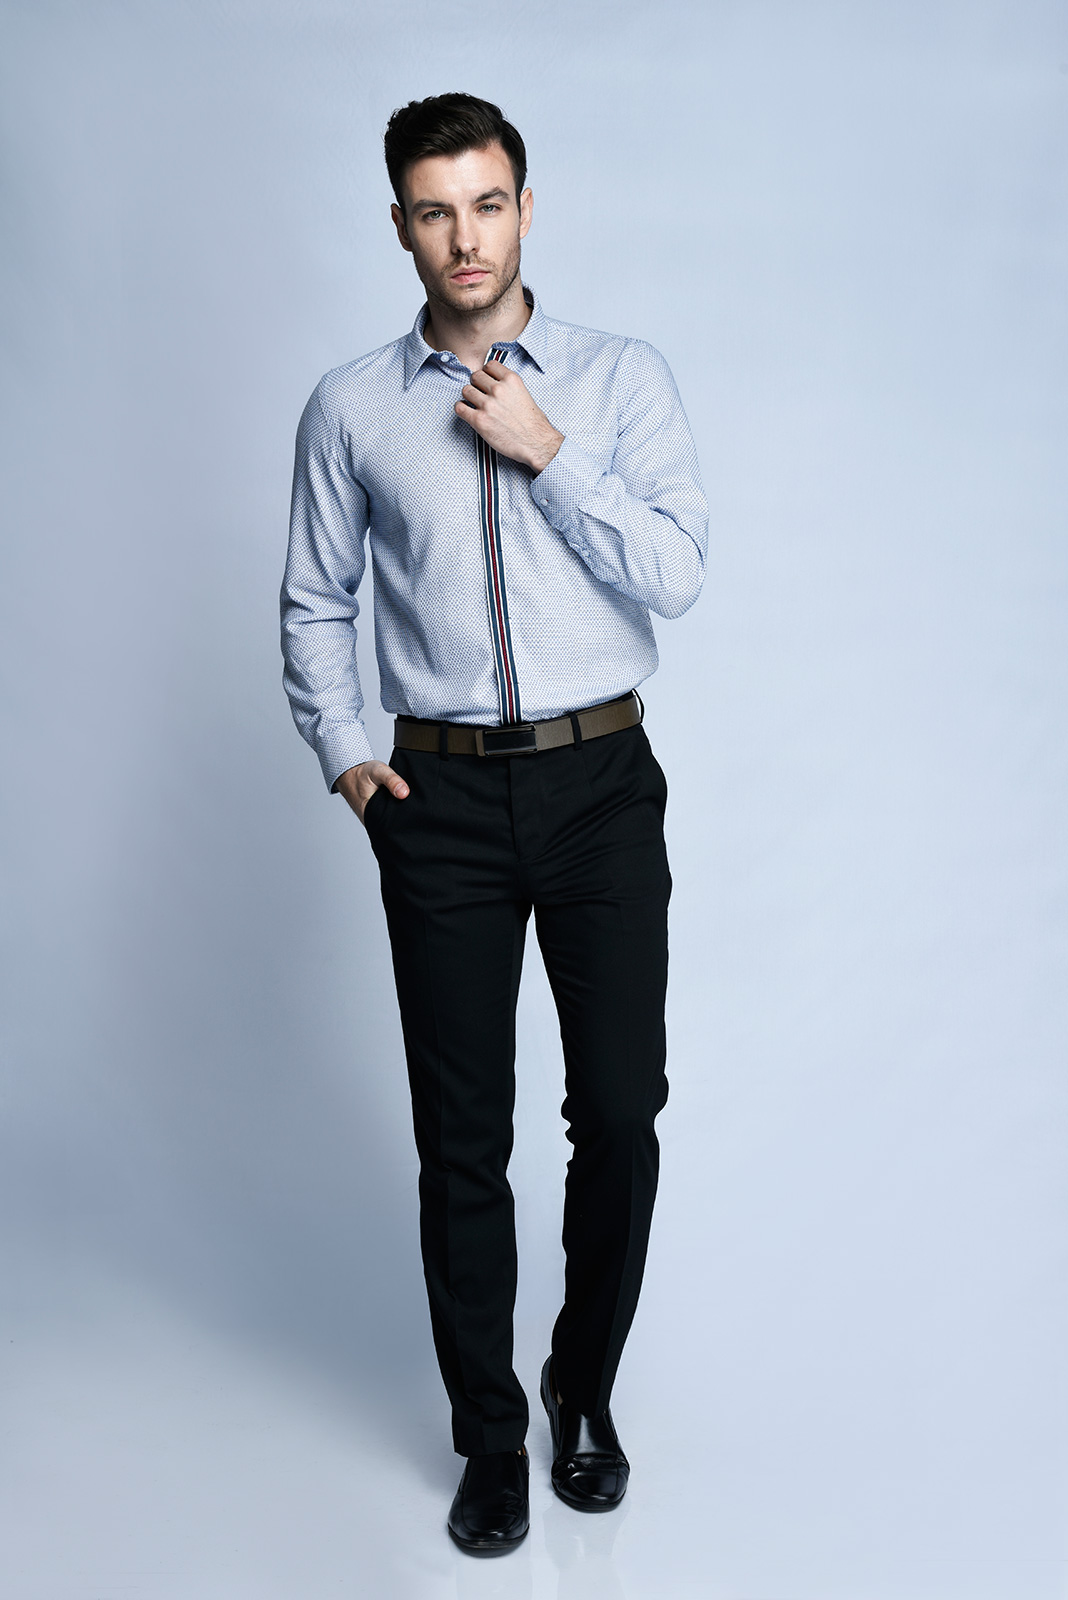 KEMEJA TANGAN PANJANG FORMAL SLIM FIT 6 (BIRU)